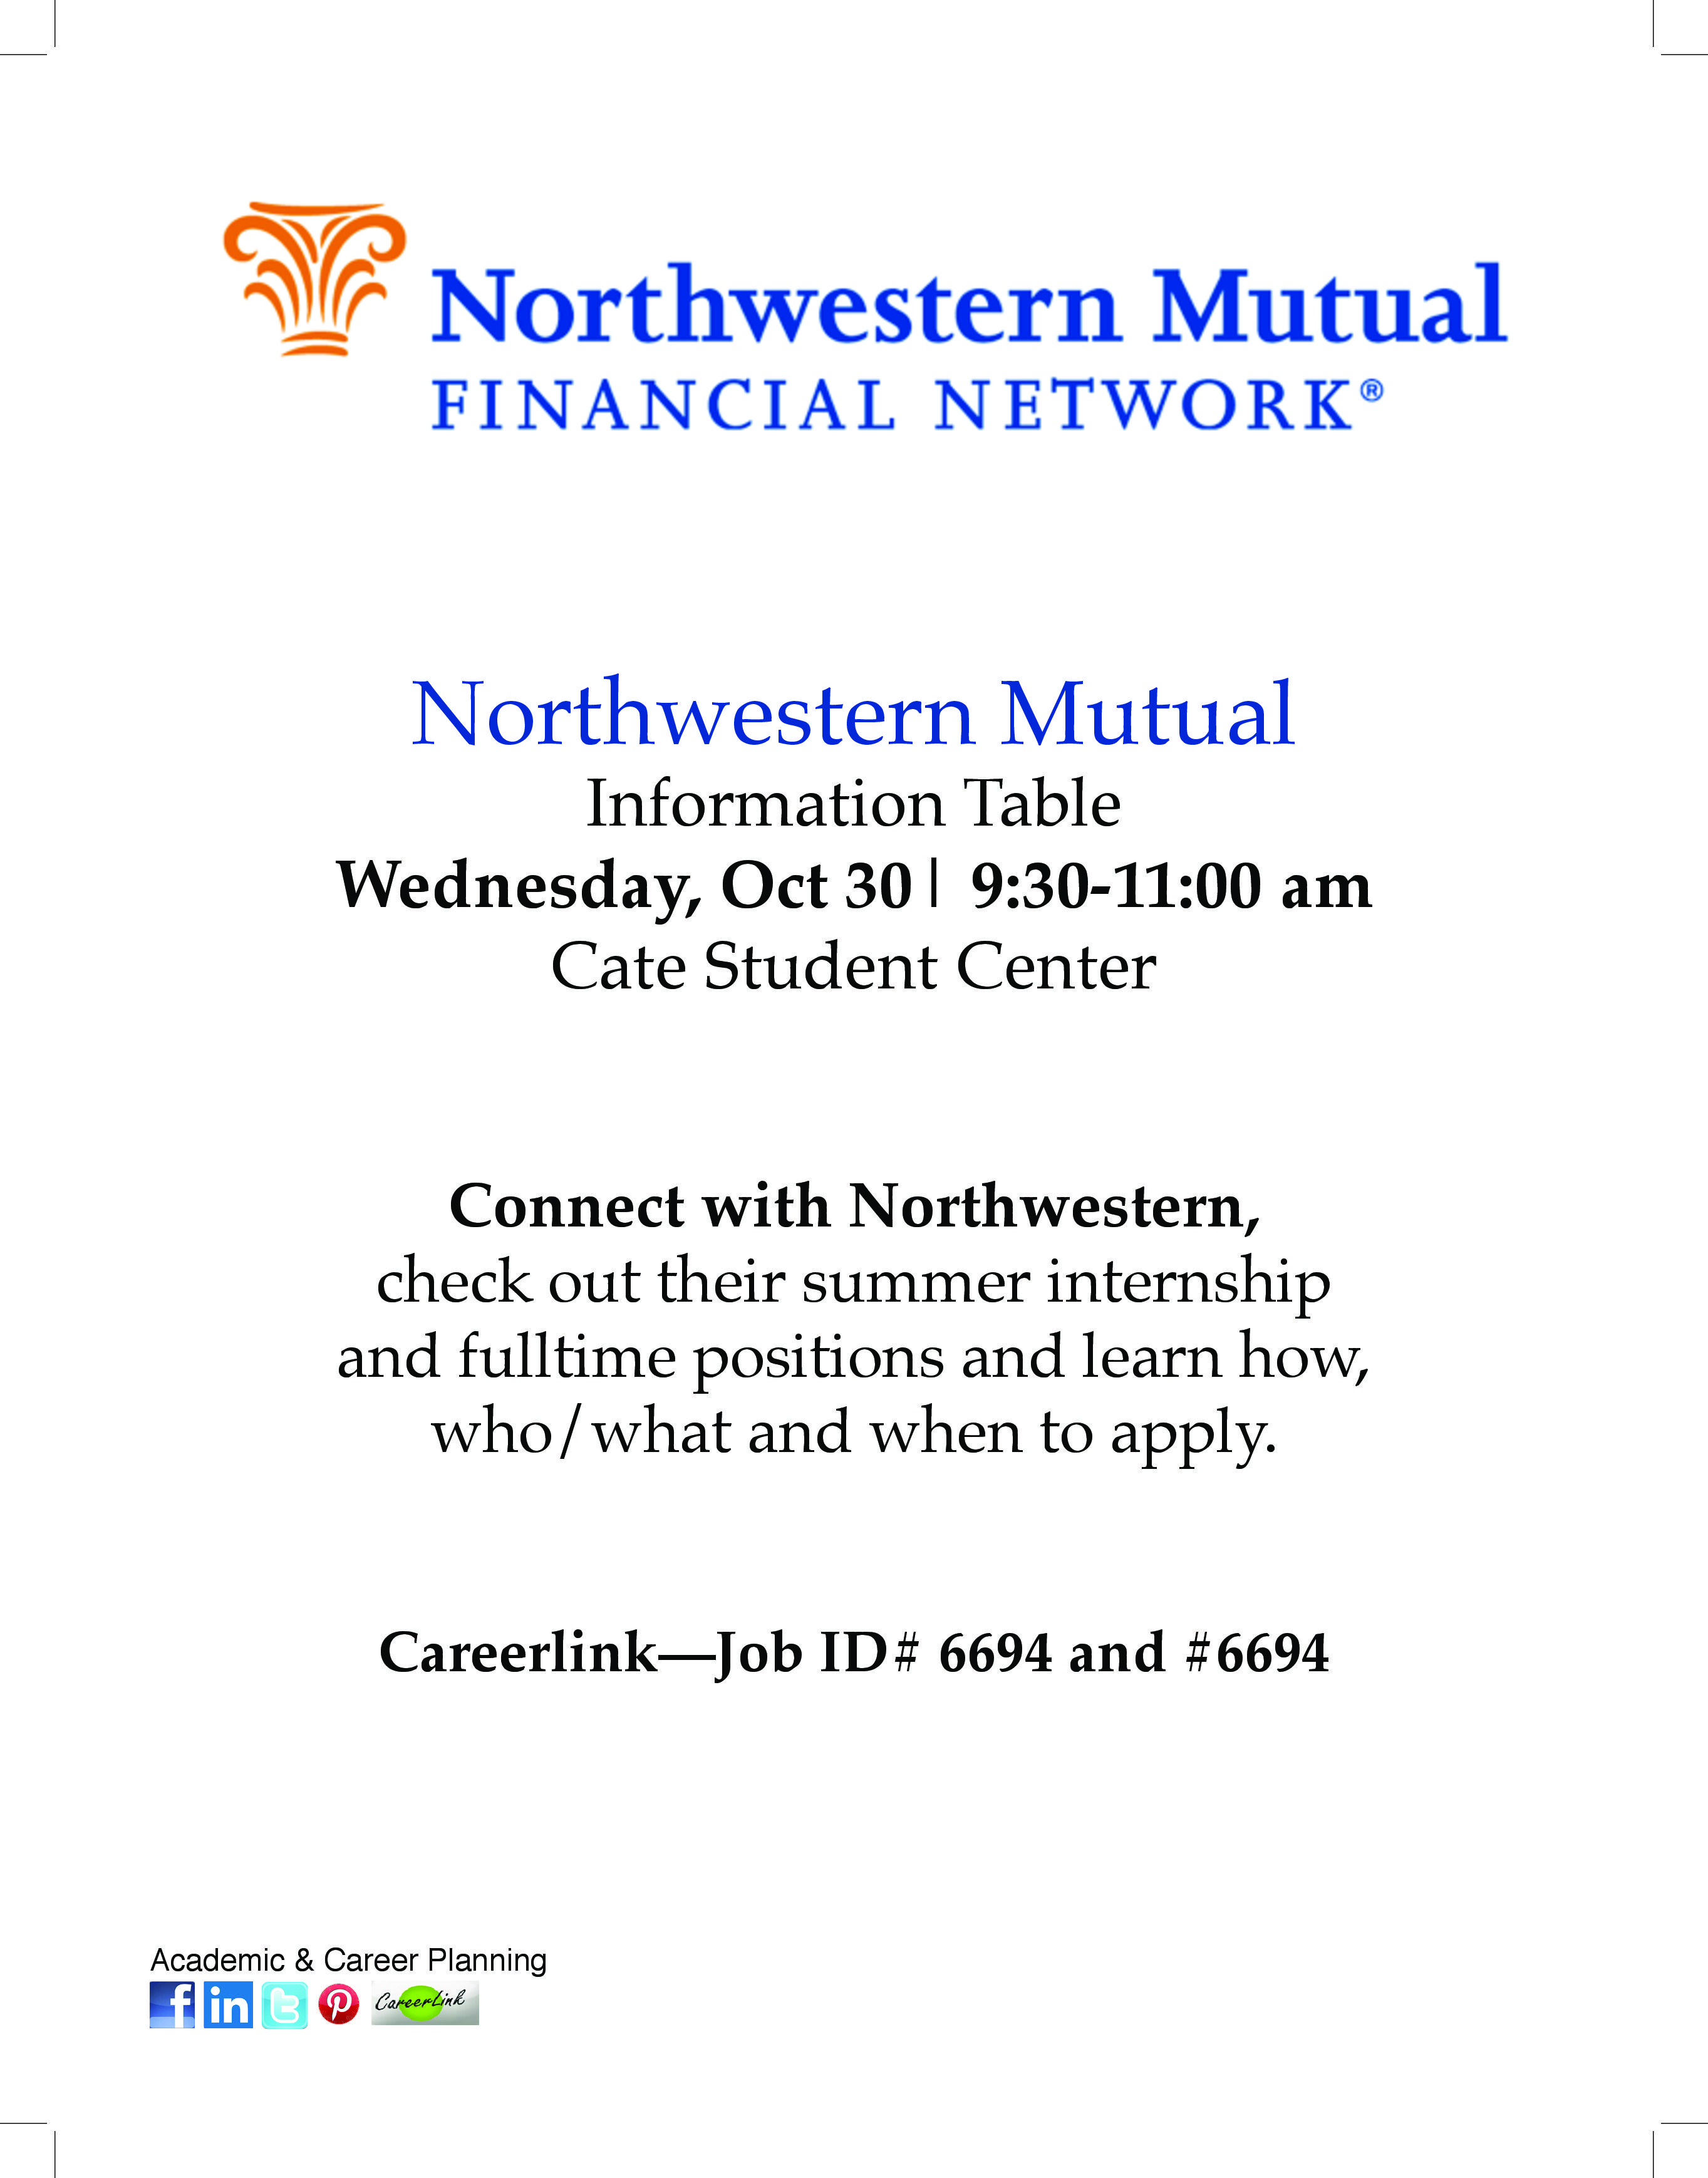 Northwestern Mutual Is Visiting Oct 30 They Are Looking